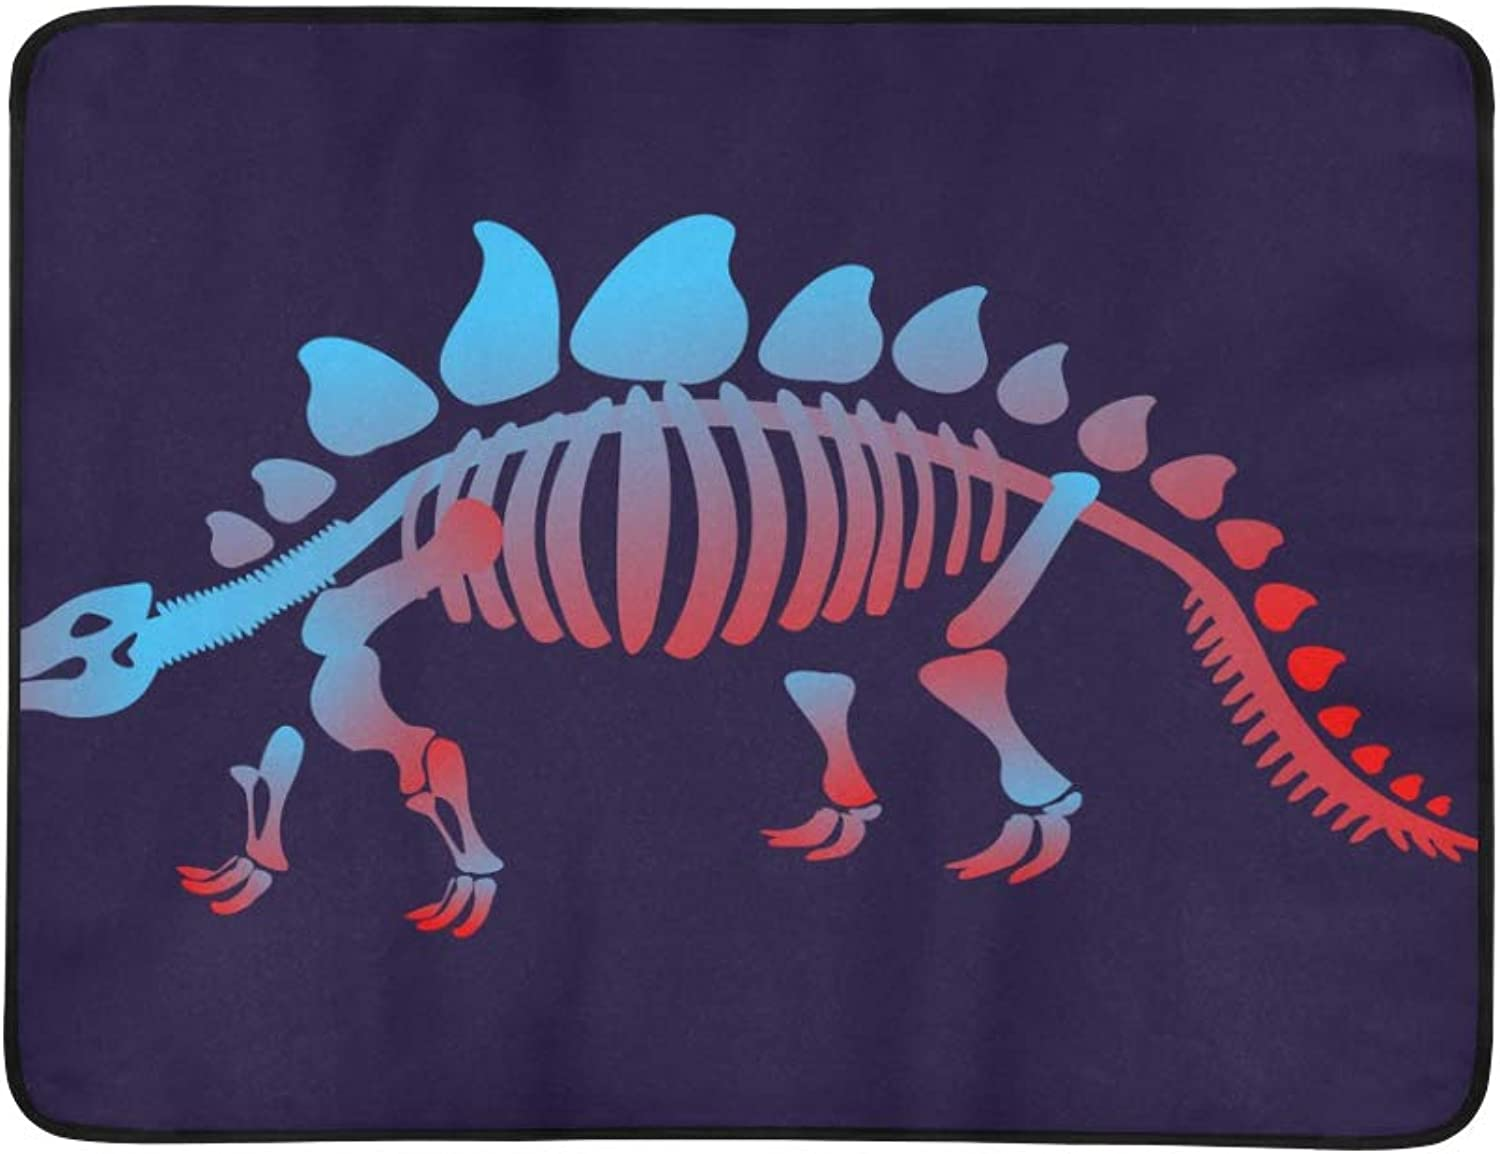 Skeleton of Dinosaur Pattern Portable and Foldable Blanket Mat 60x78 Inch Handy Mat for Camping Picnic Beach Indoor Outdoor Travel